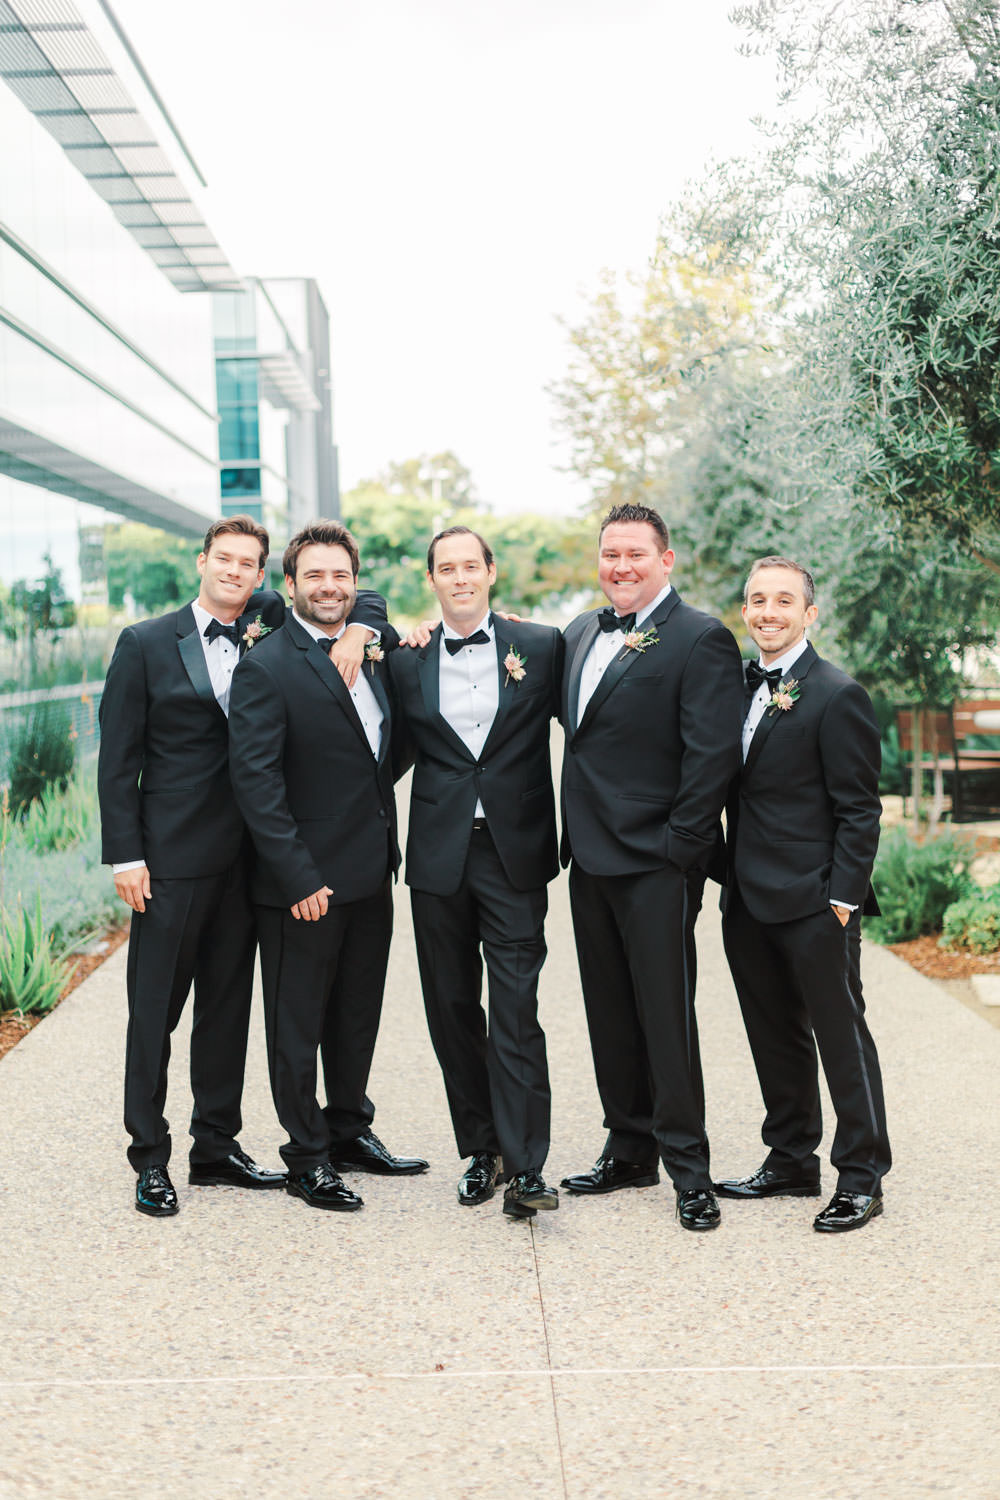 Groom and groomsmen in black tuxes at Green Acre Campus Pointe wedding, Cavin Elizabeth Photography